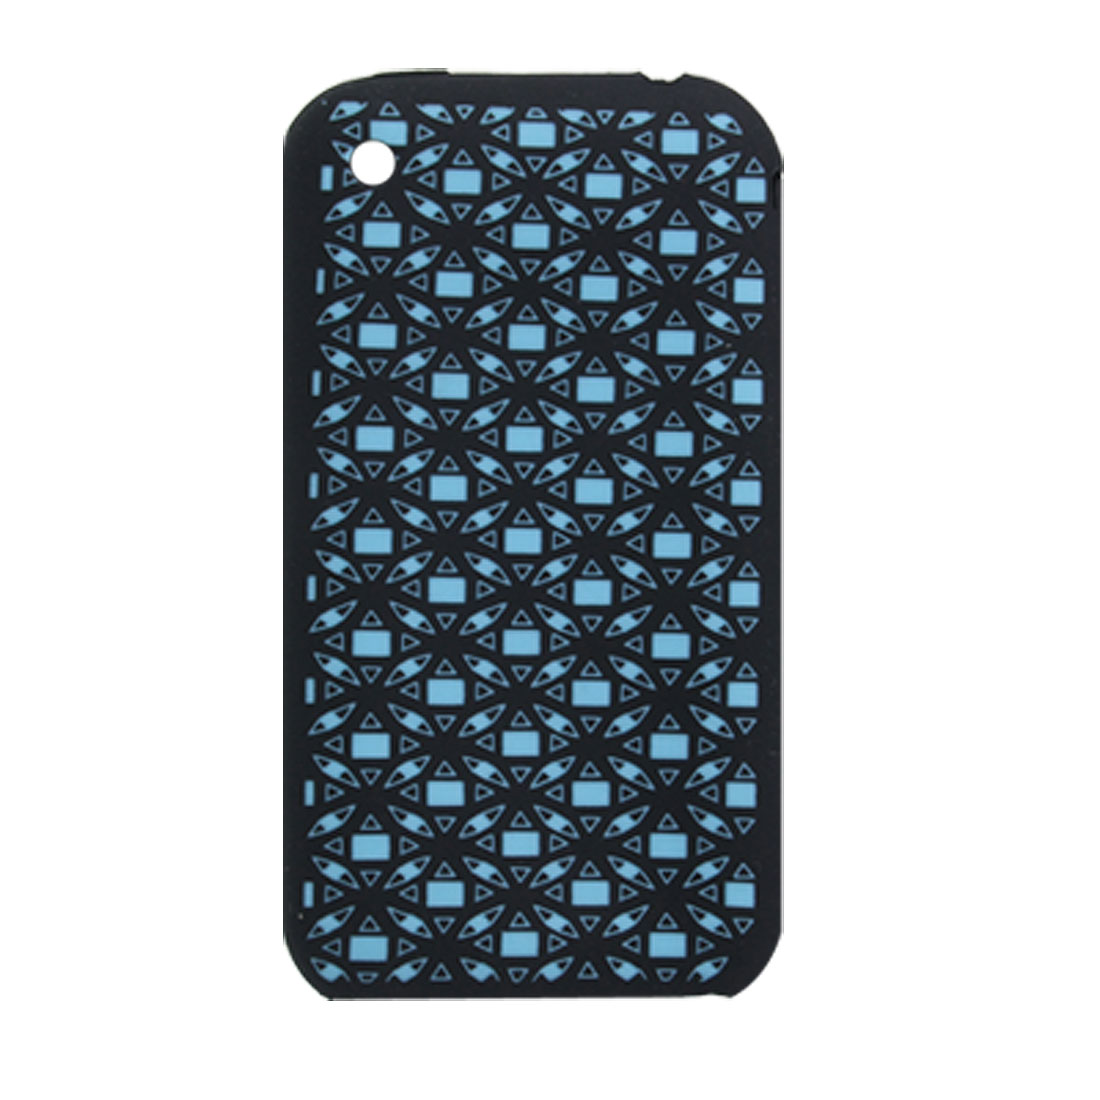 Sky Blue Rectangle Print Silicone Back Case Skin for iPhone 3G